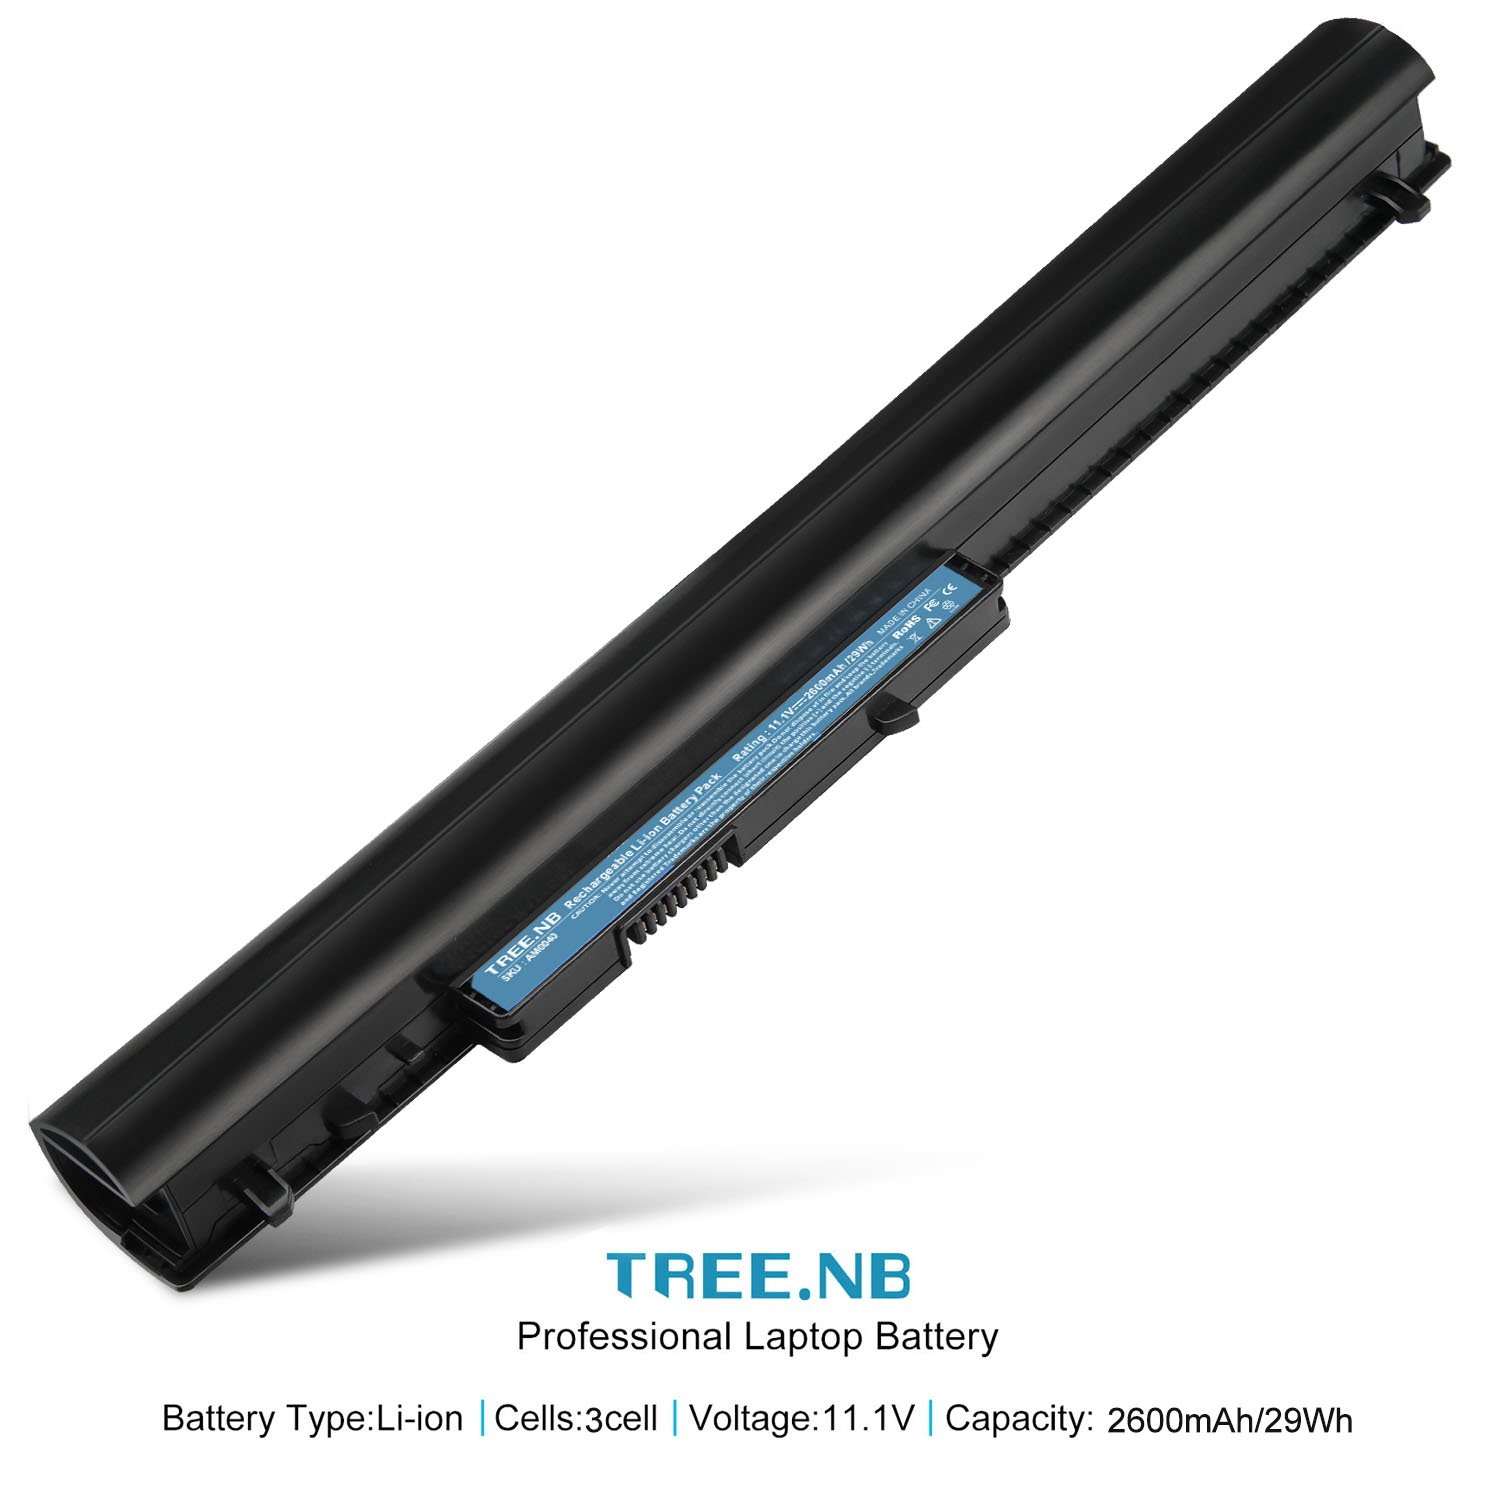 Amazon.com: Battery Replace with HP Spare 776622-001 (LA03): Computers & Accessories